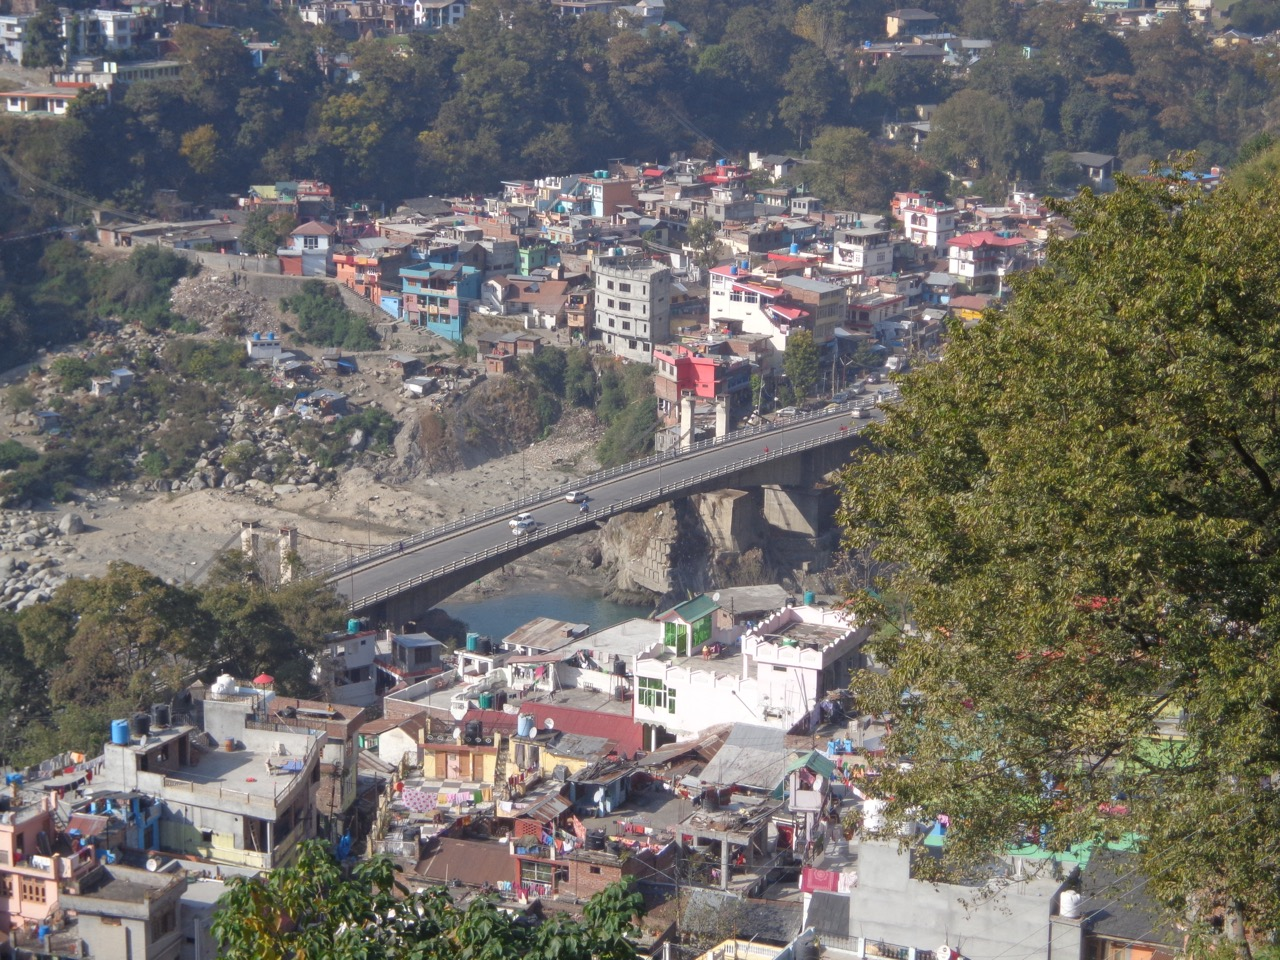 The bridge that the bus took to enter Chamba, as seen from the edge of Chaugan.